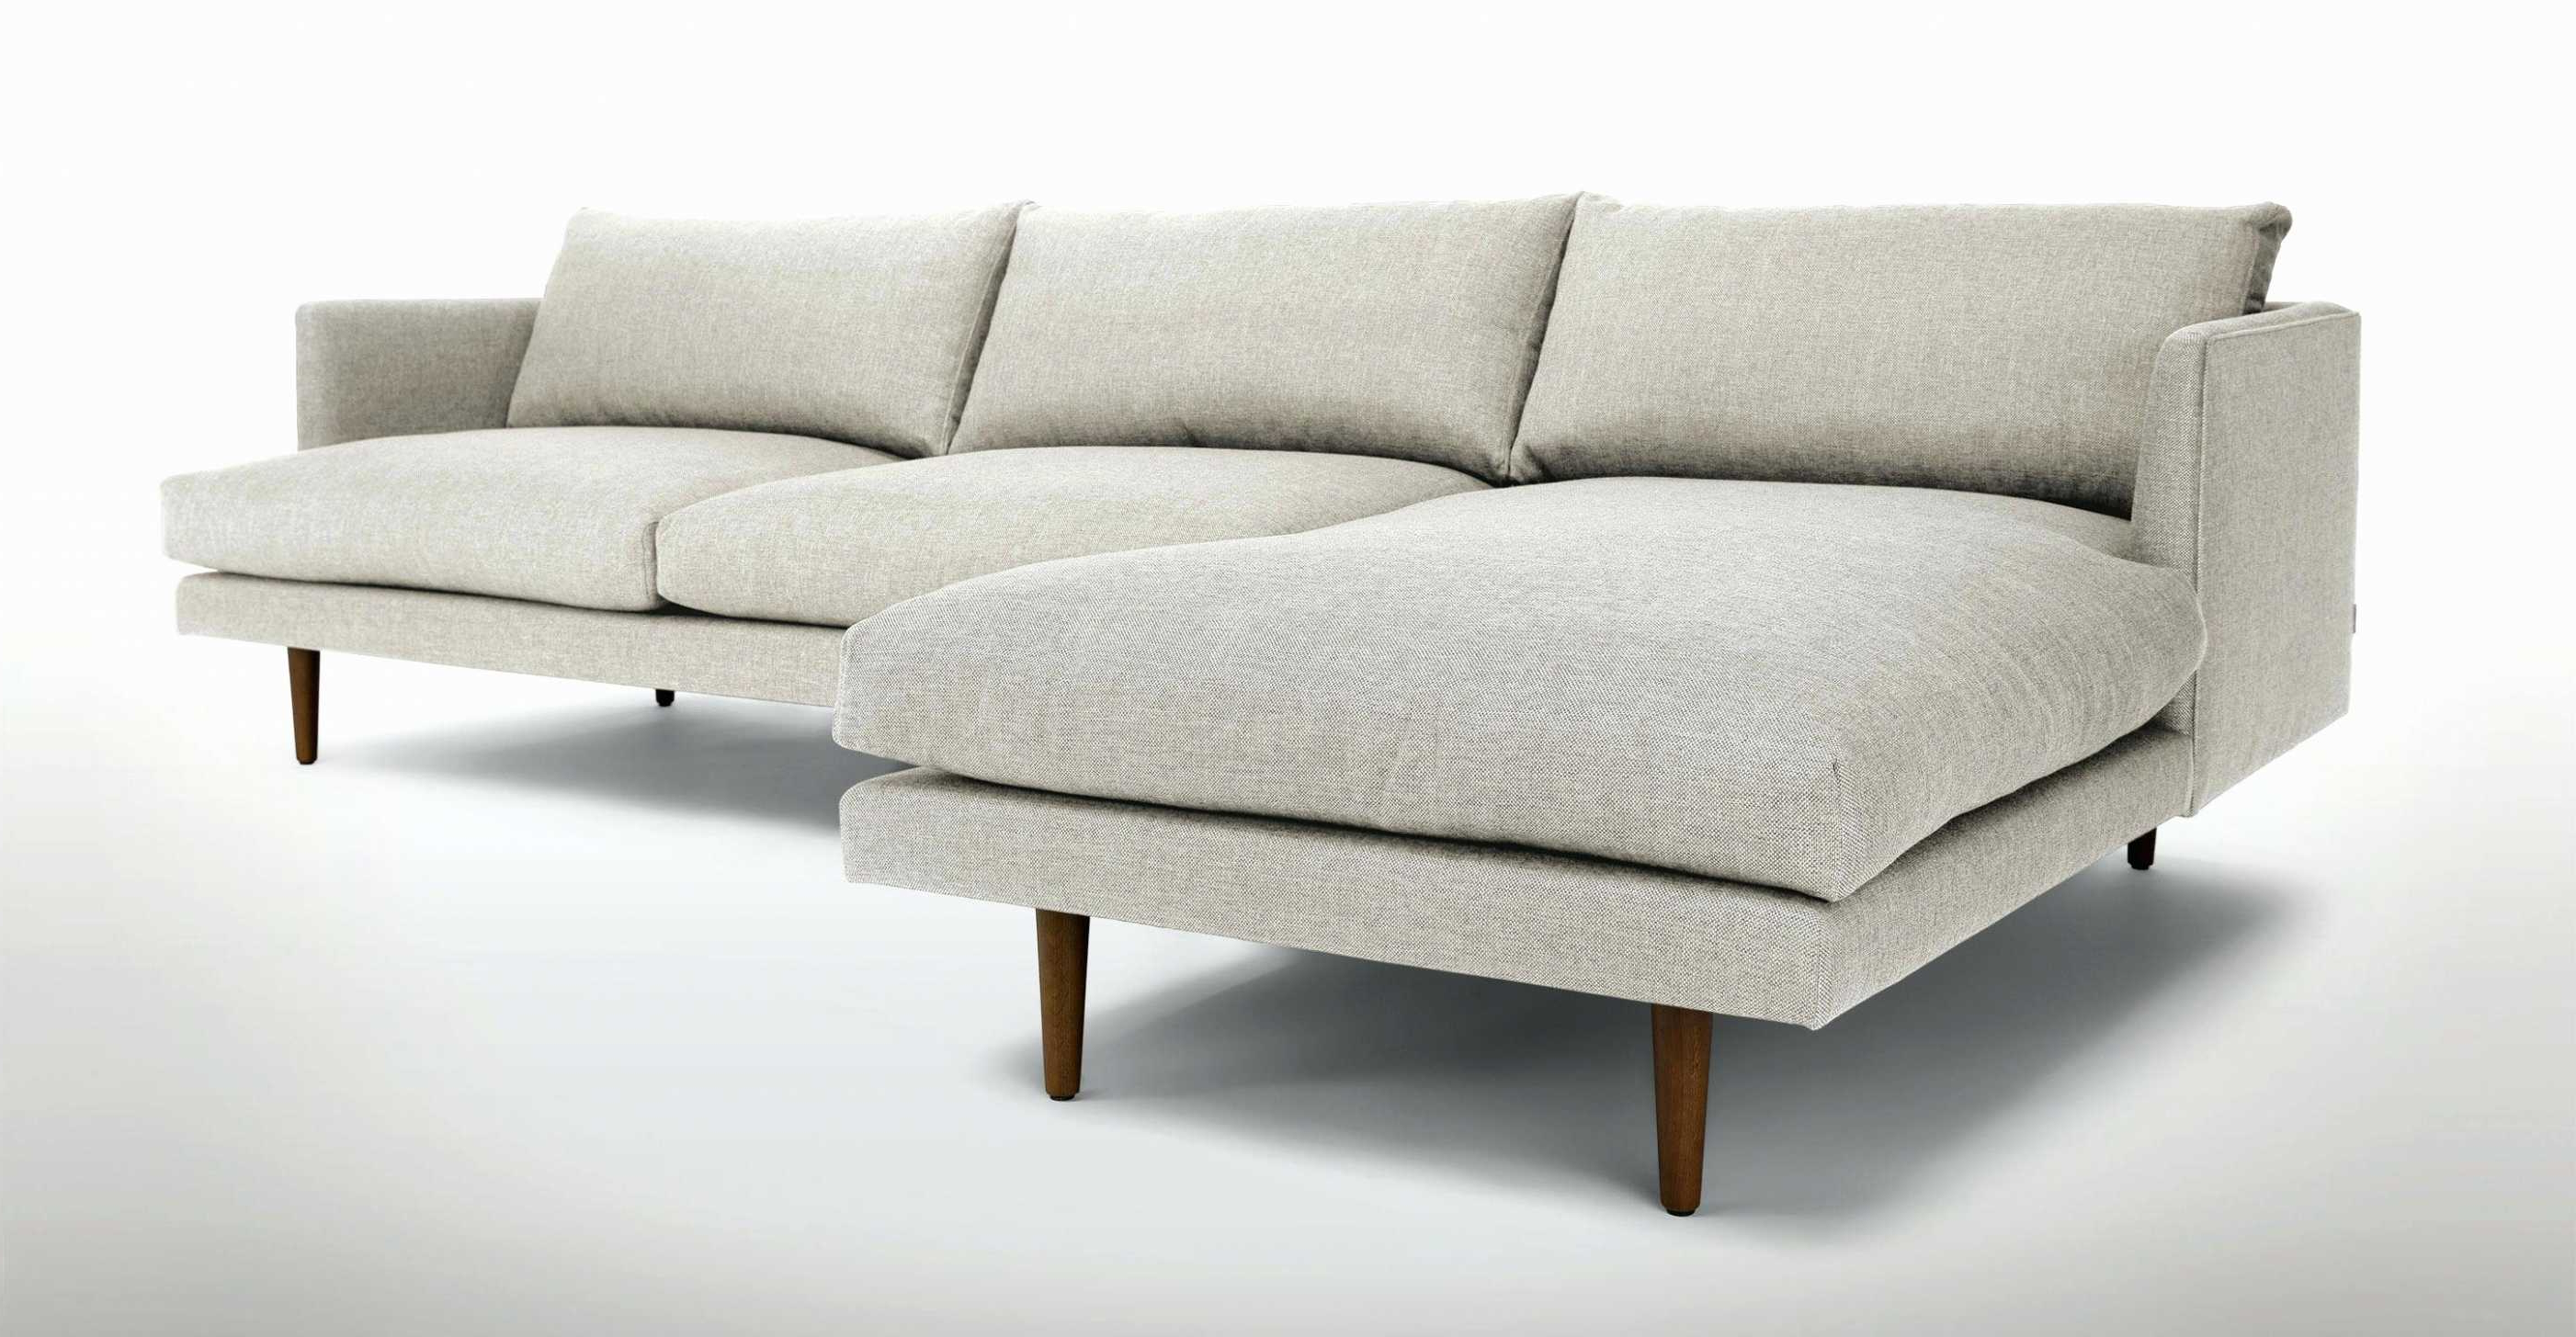 Sofas En asturias S5d8 sofa Segunda Mano asturias Great Latest sofas Camas after sofa Cama